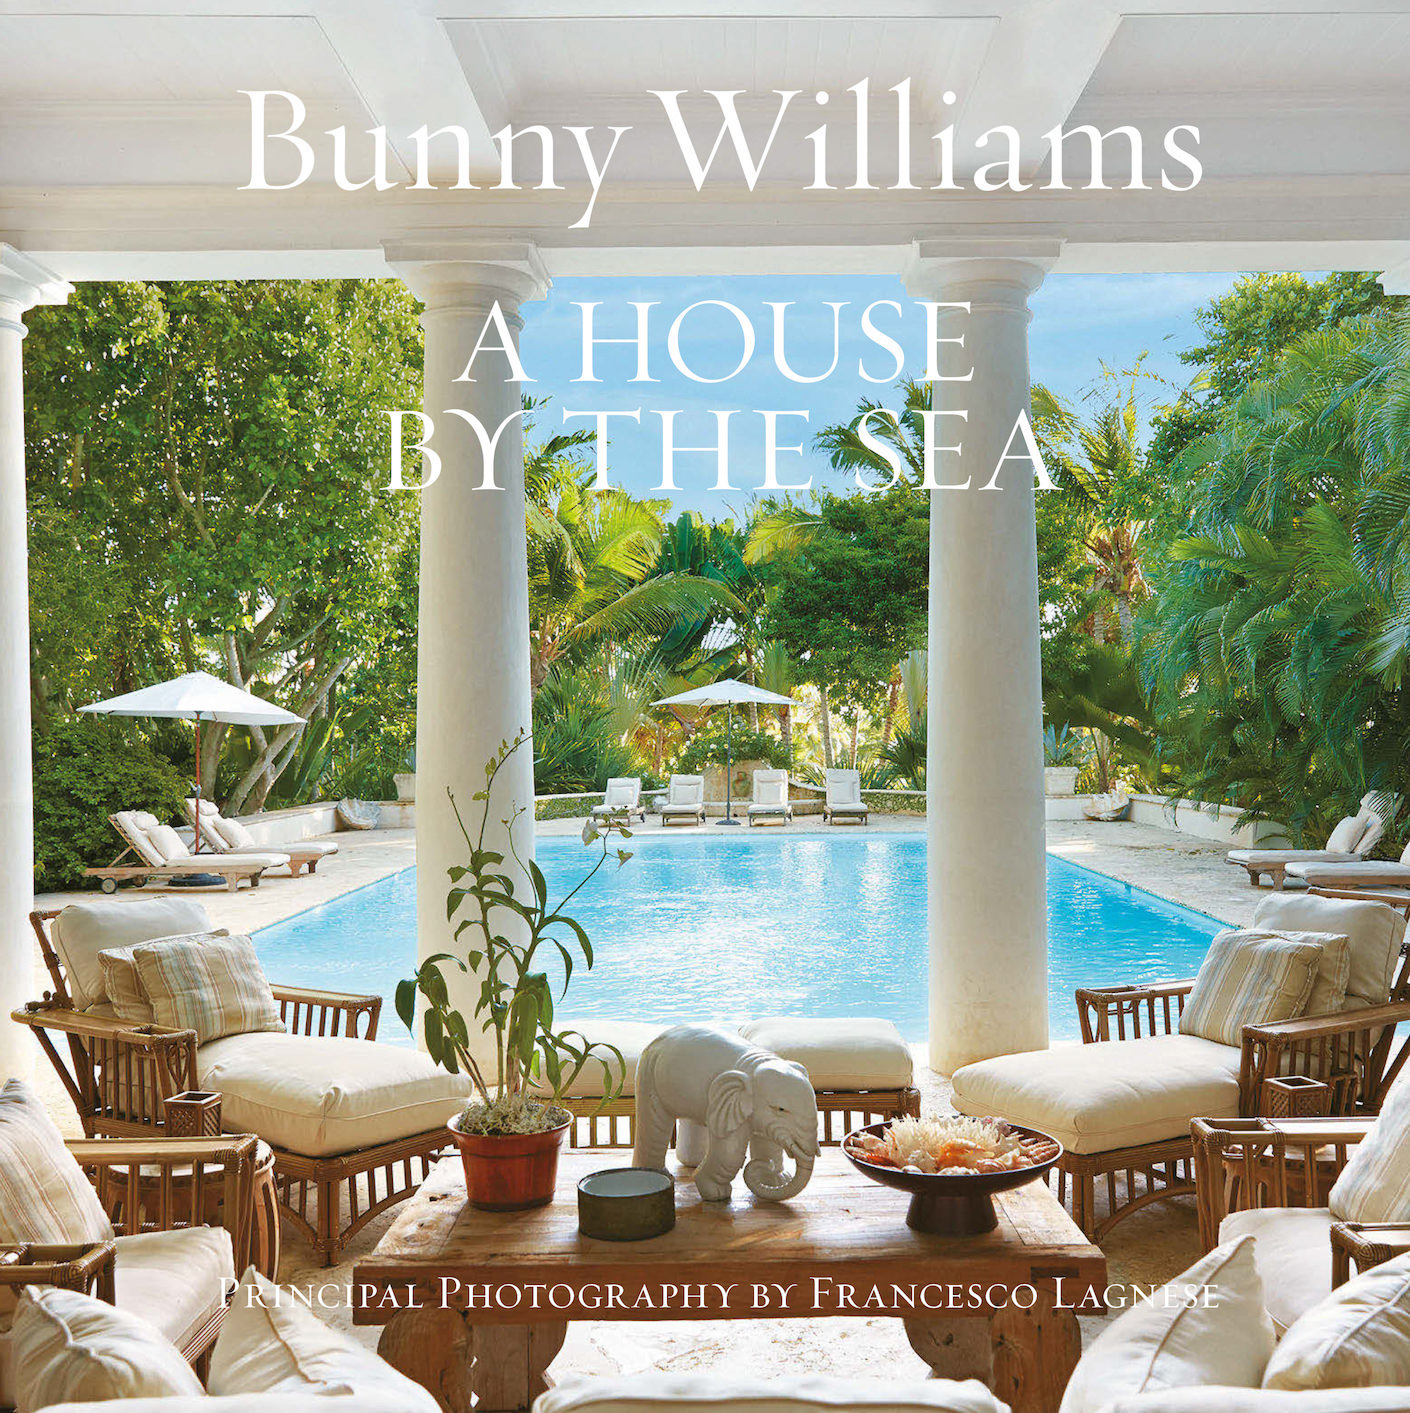 Bunny Williams A House by the Sea book jacket